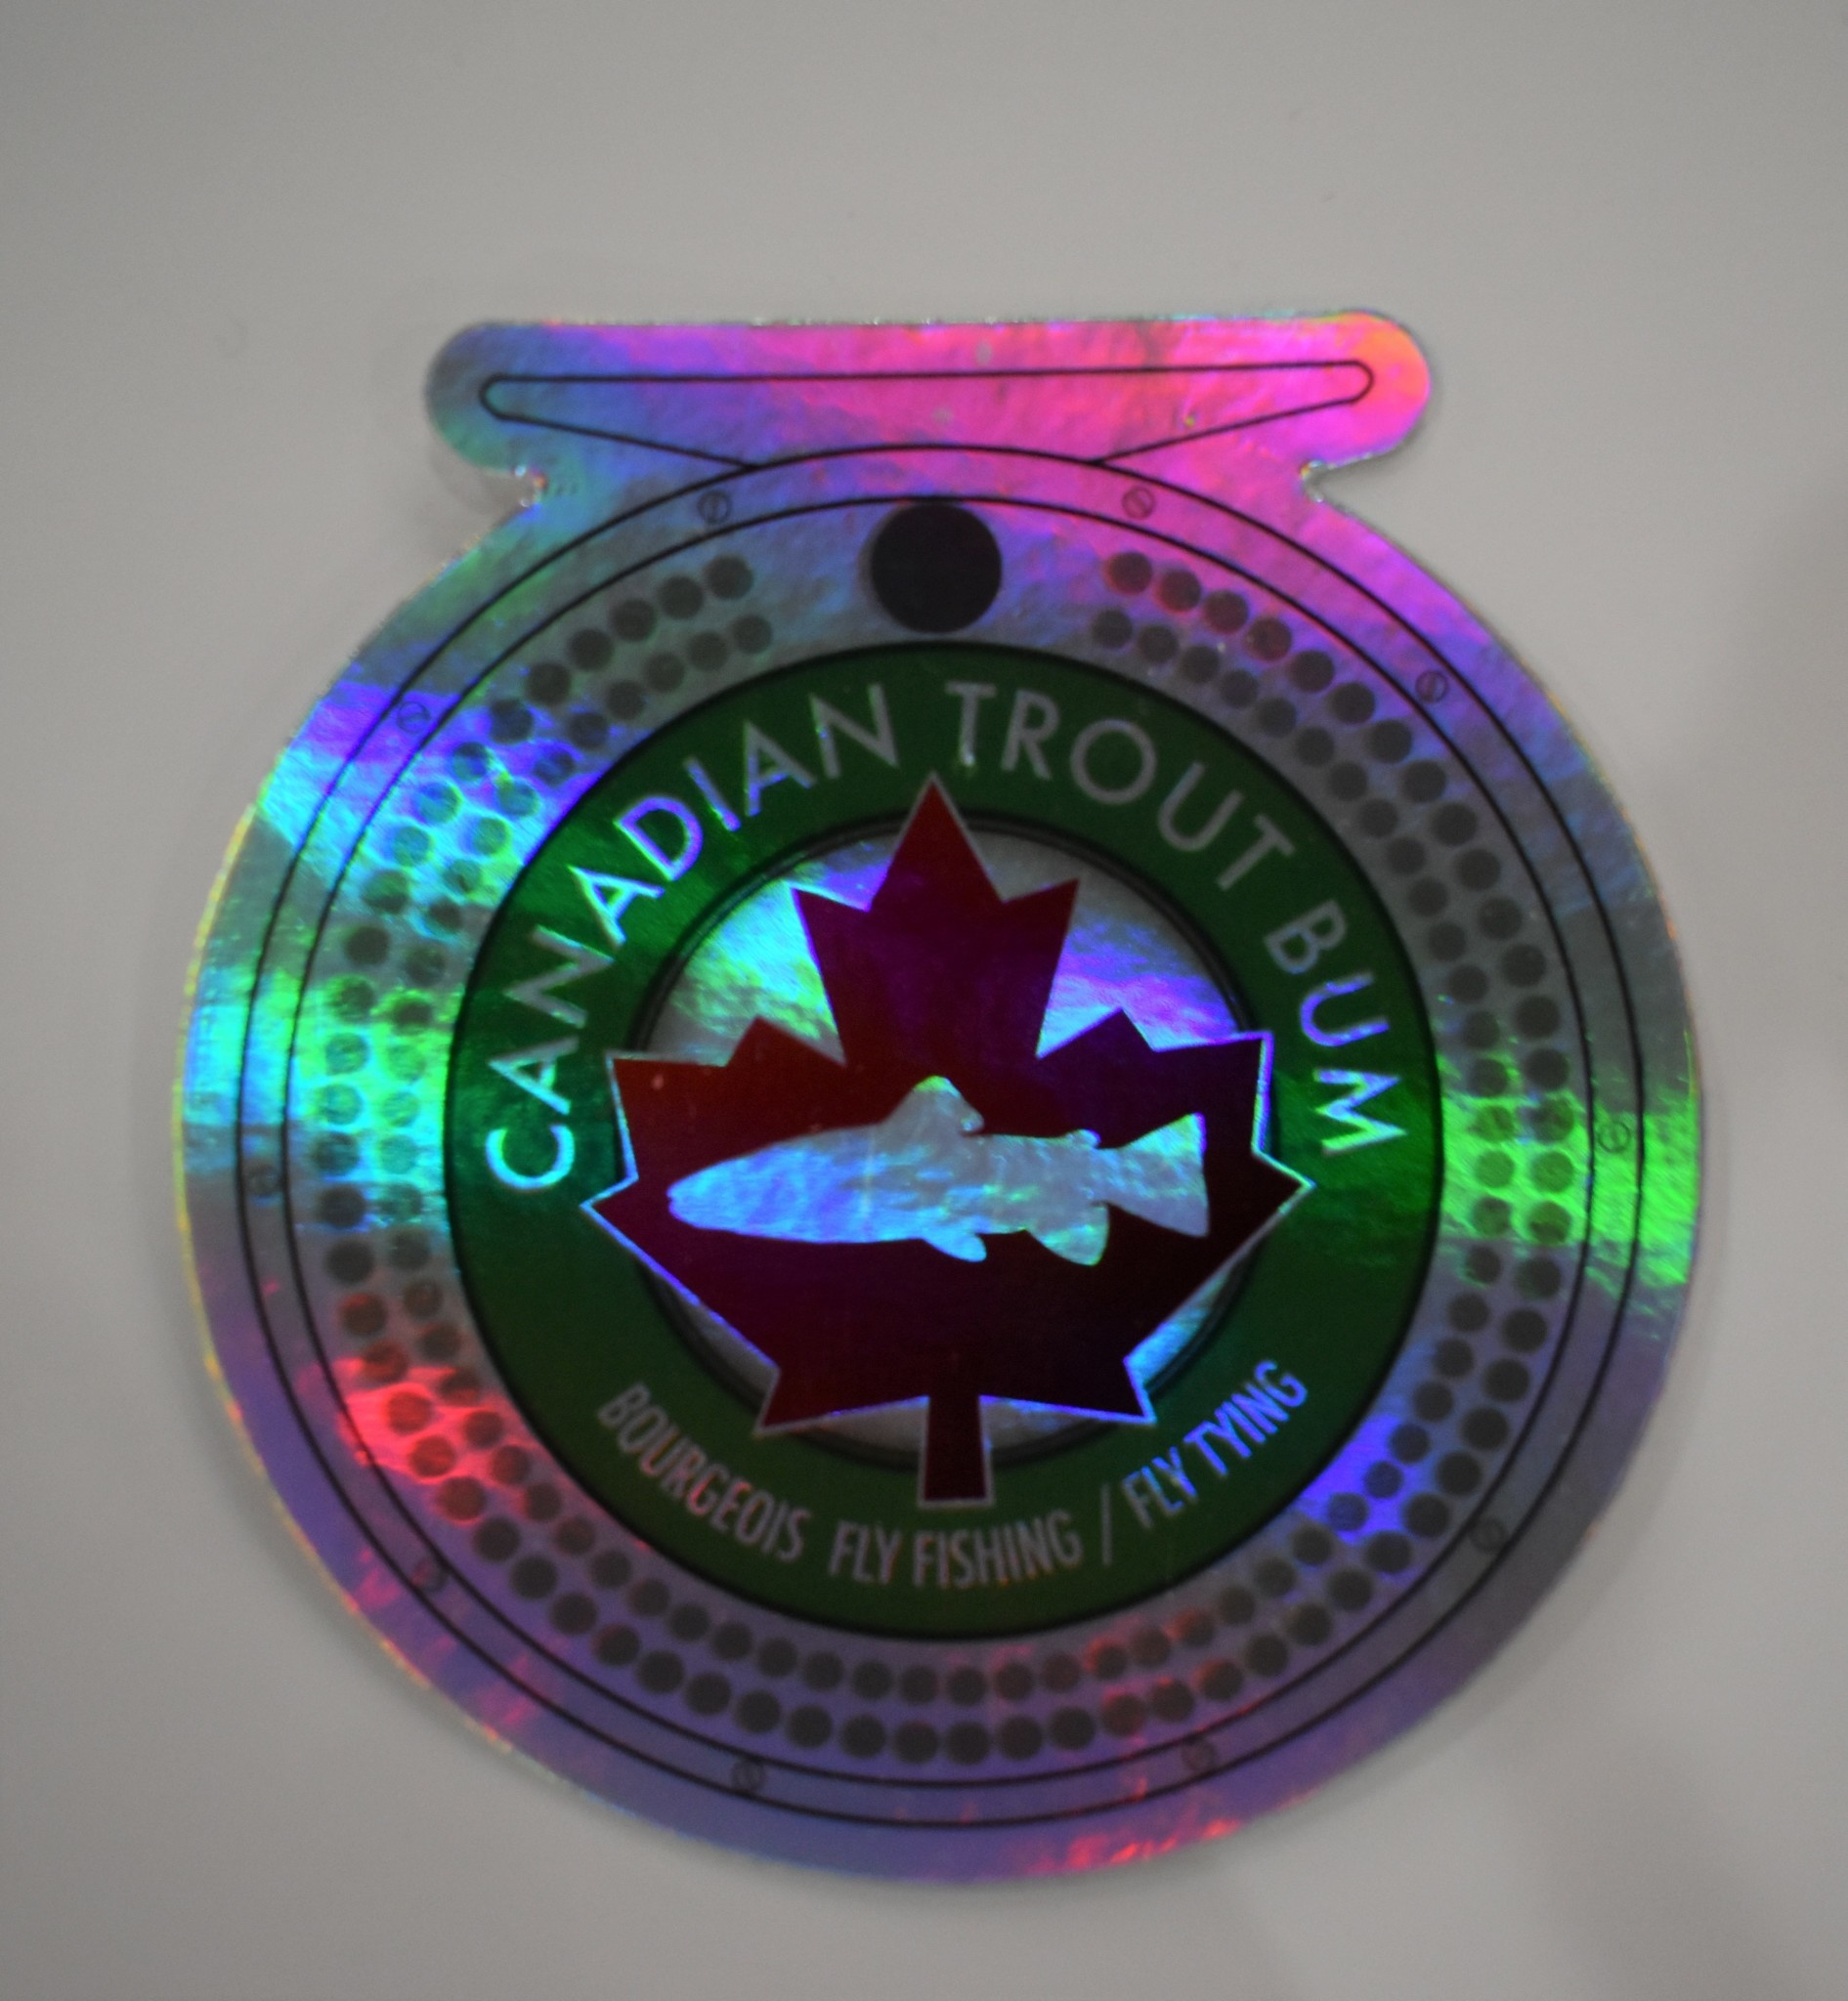 CANADIAN TROUT BUM / AMERICAN TROUT BUM Canadian Trout Bum B Fly Fishing/Tying Reel Decal